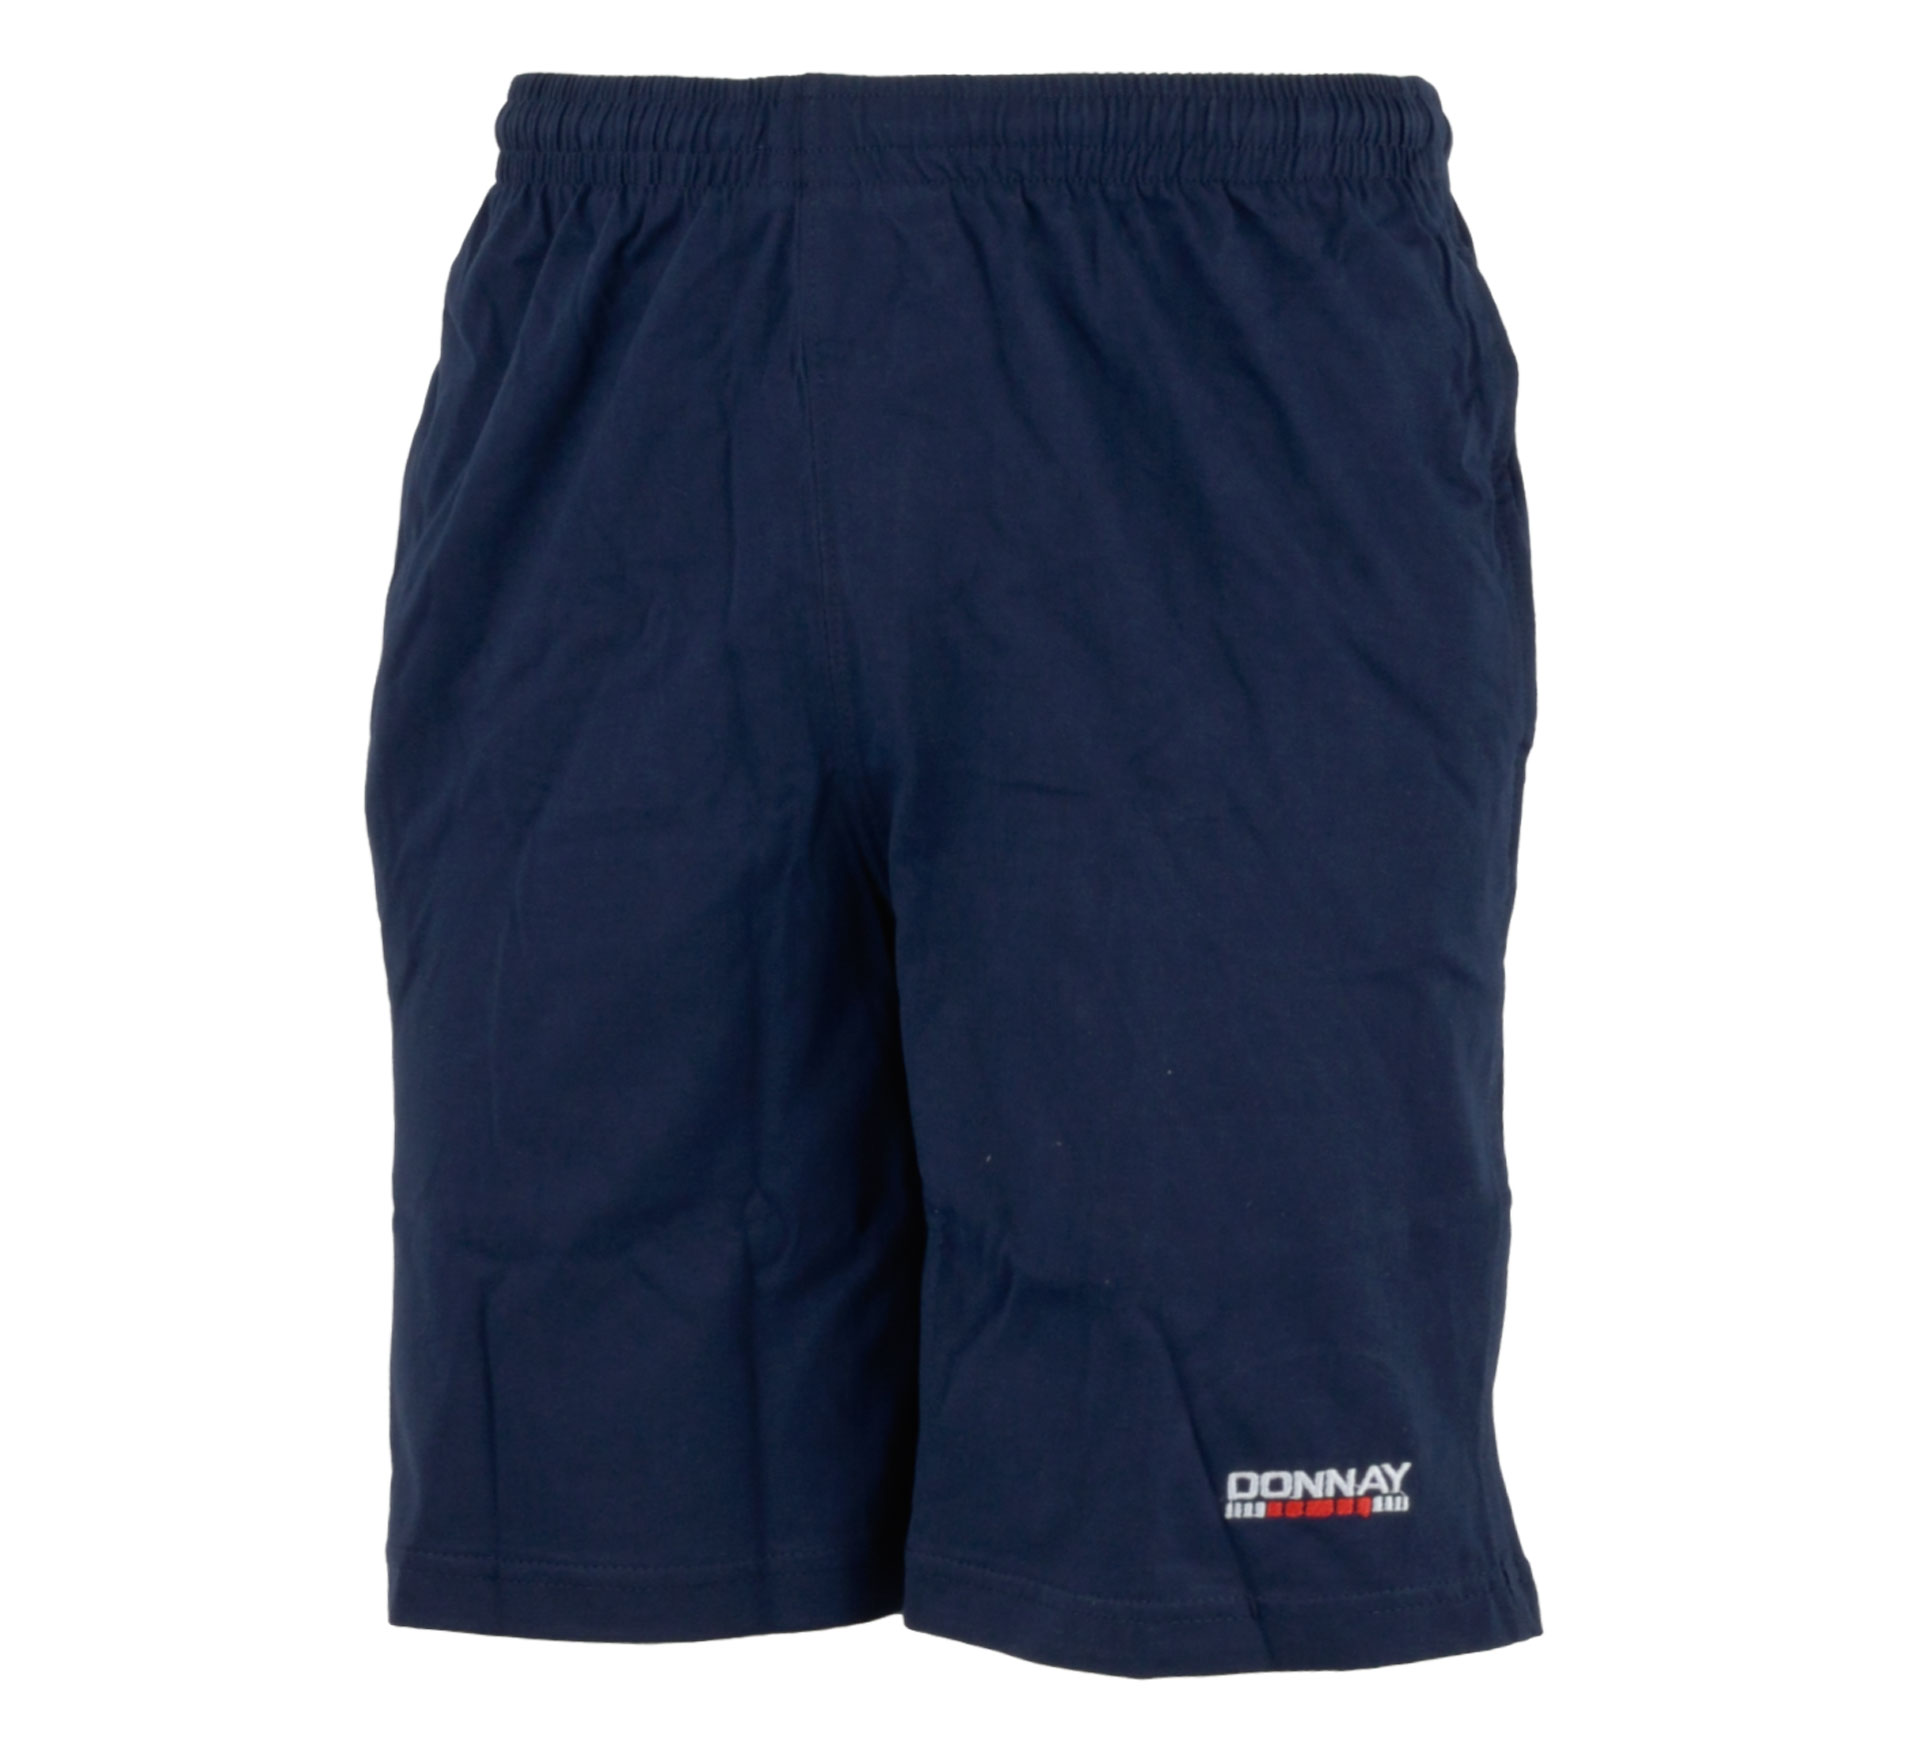 Donnay  Joggingshort Heren navy